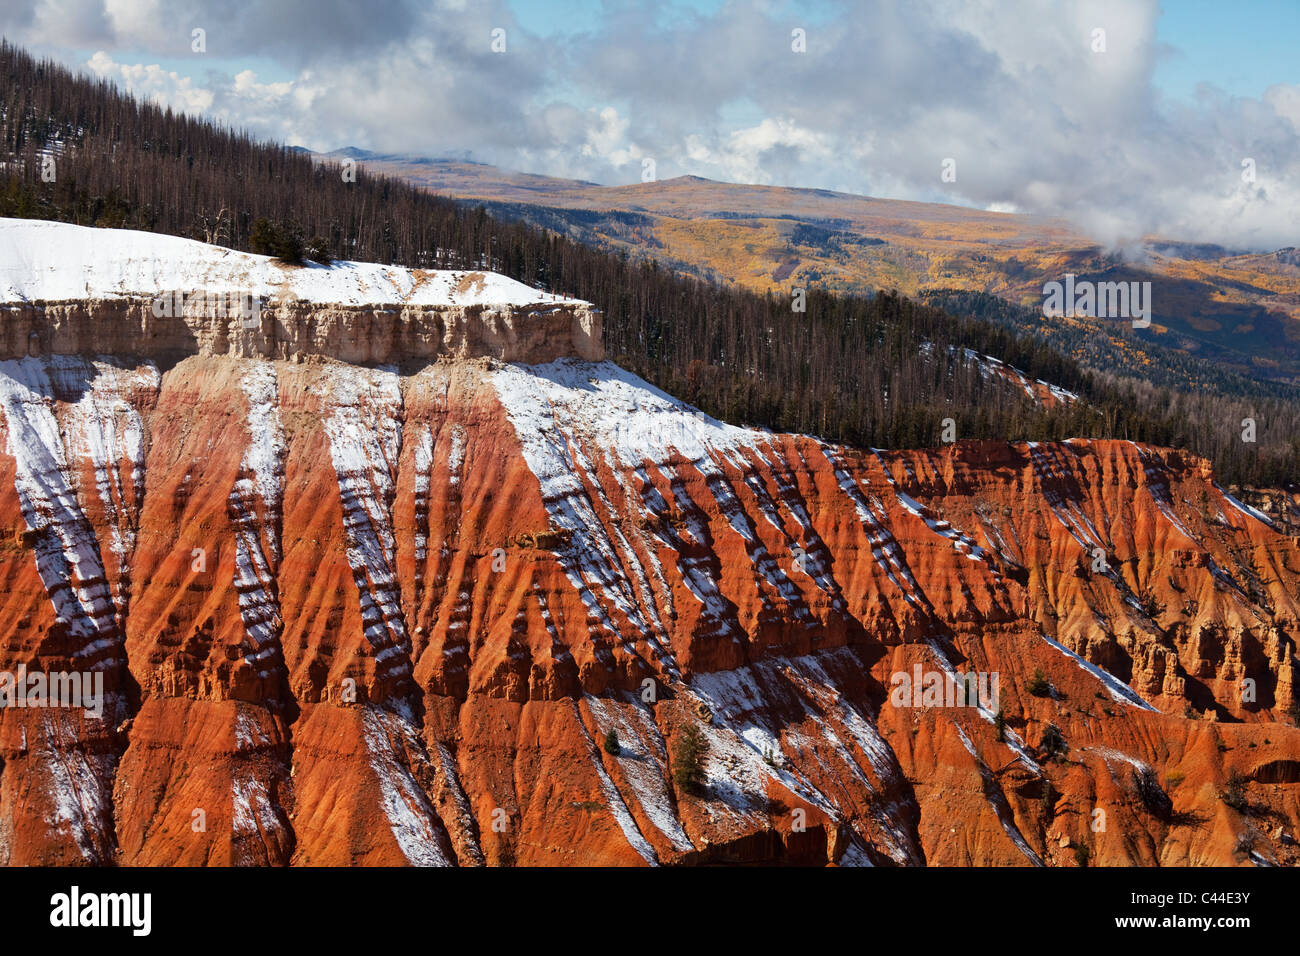 Cedar Breaks in autumn season - Stock Image